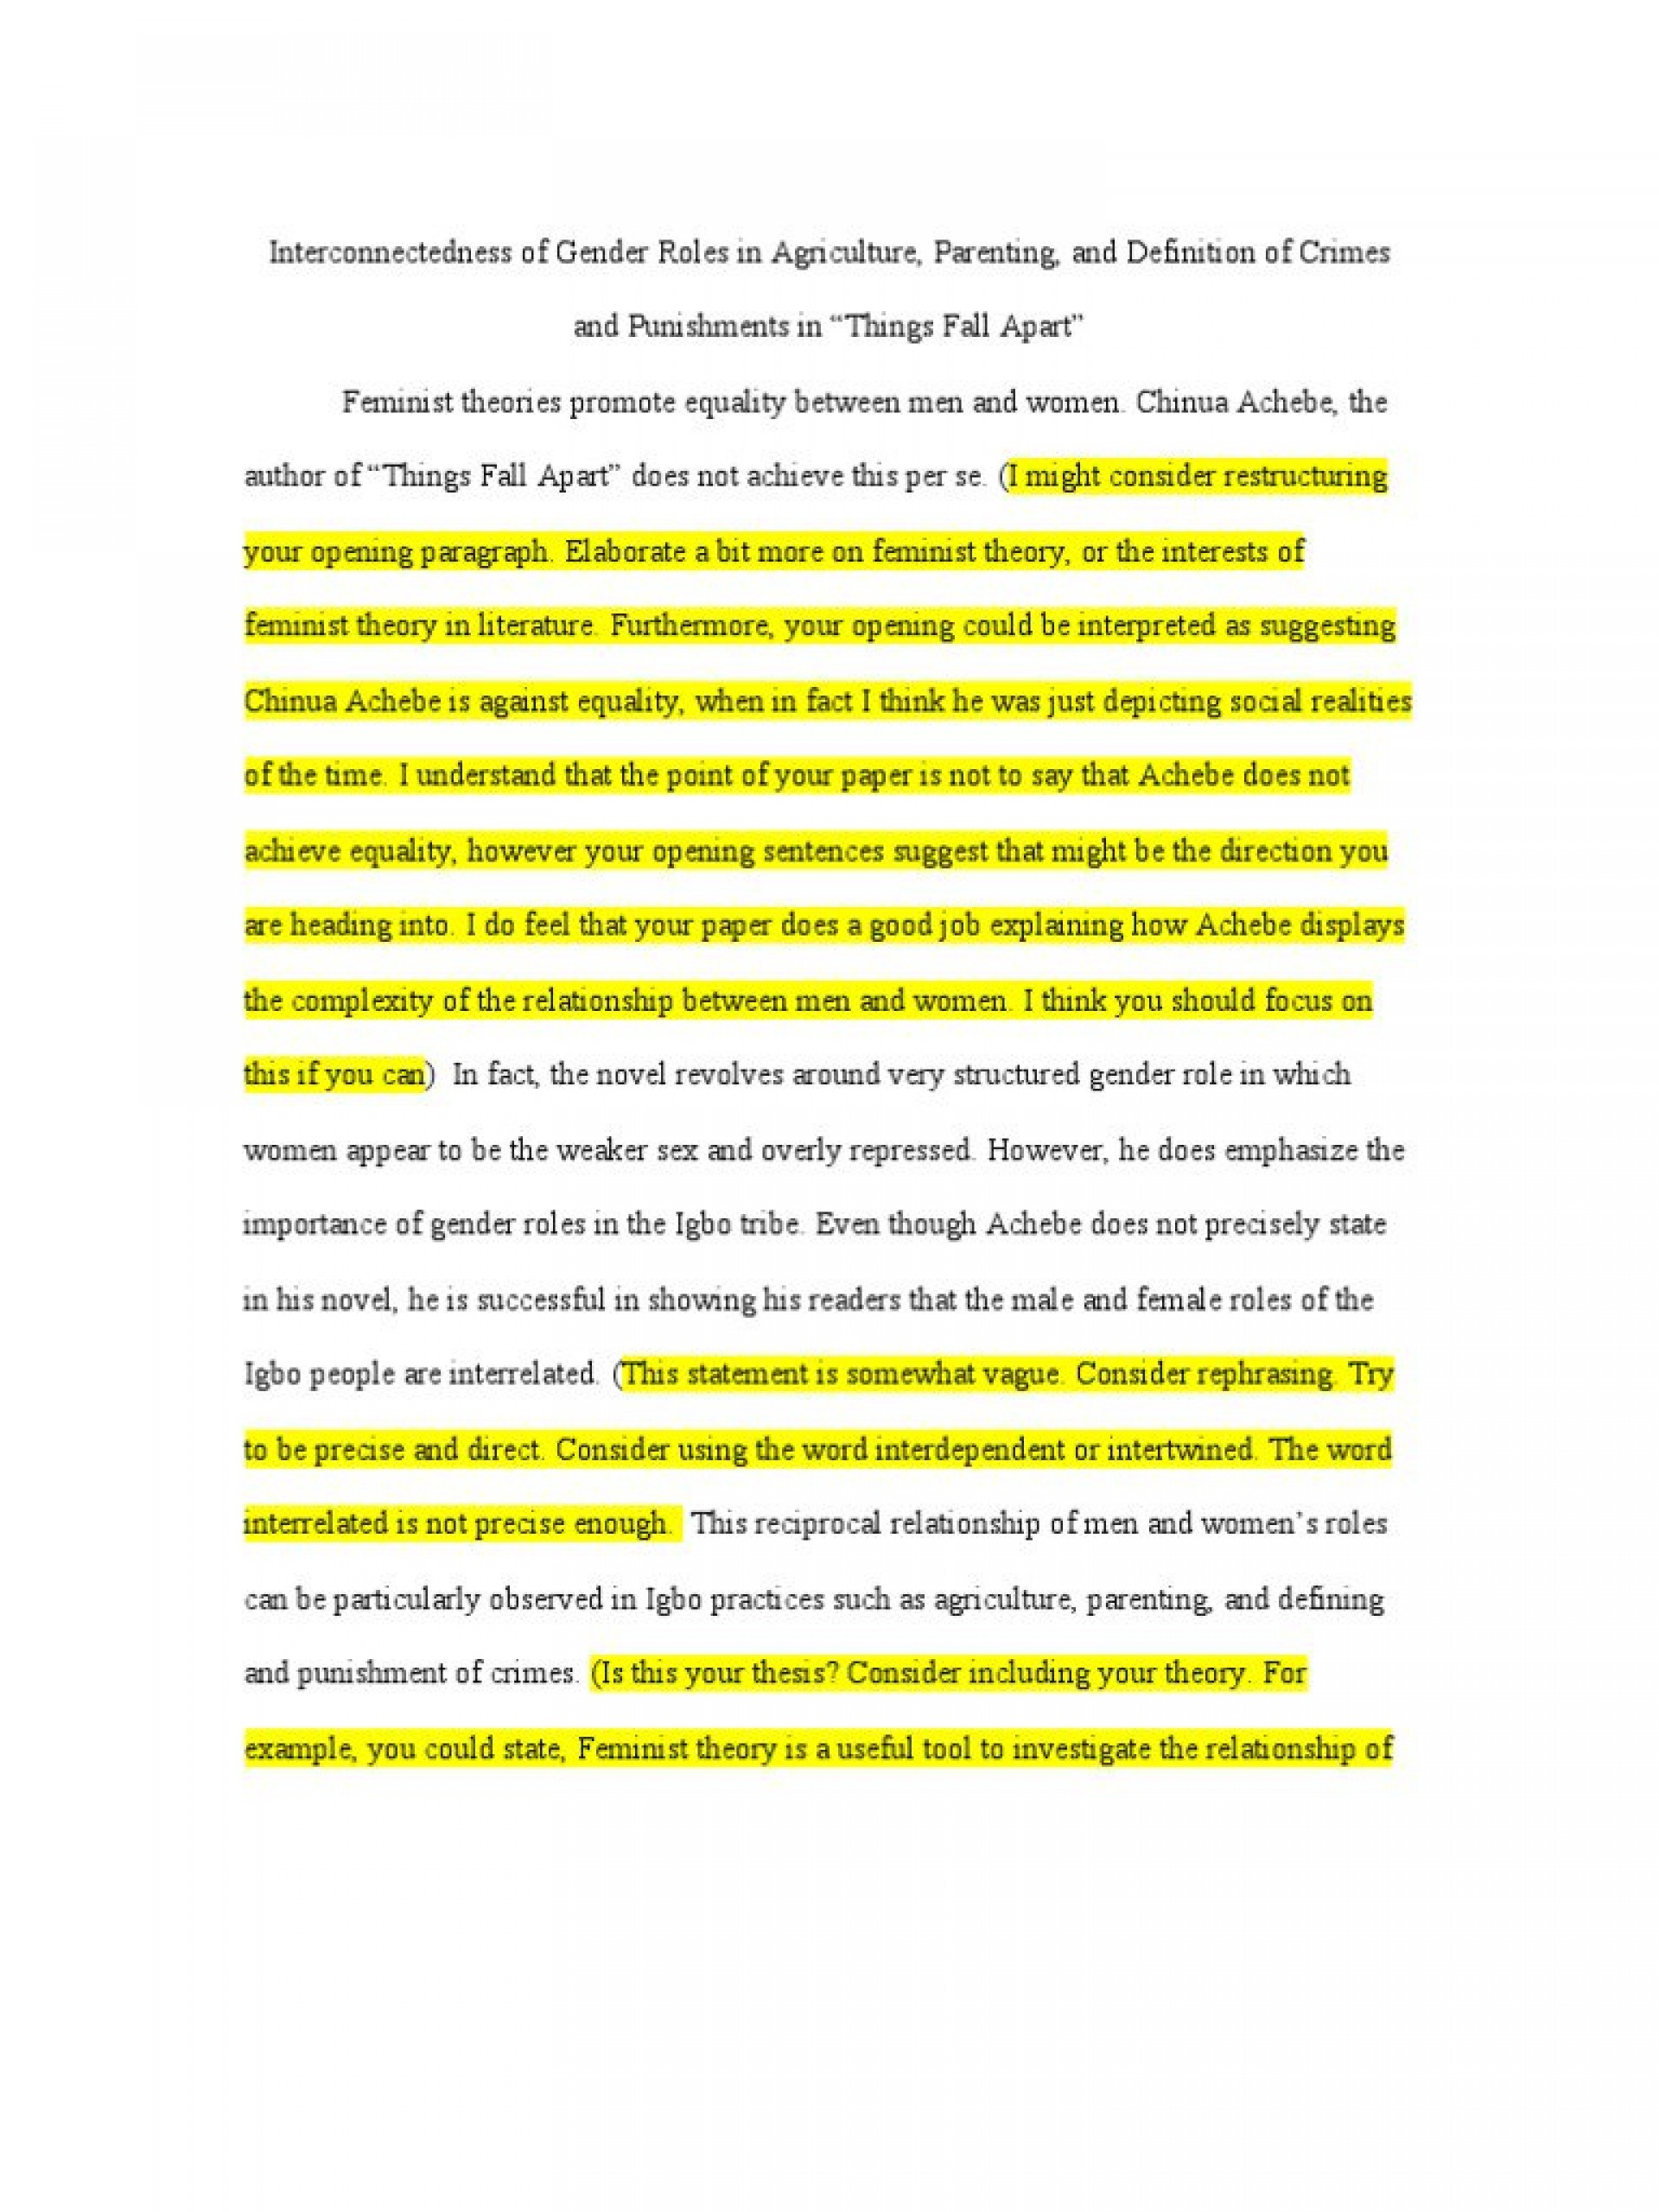 007 Essay Example Gender Equality About Inequality Dracula Essays Custom Argumentative On In The Workplace Top Research Paper Ideas Pdf Simple Words 1920